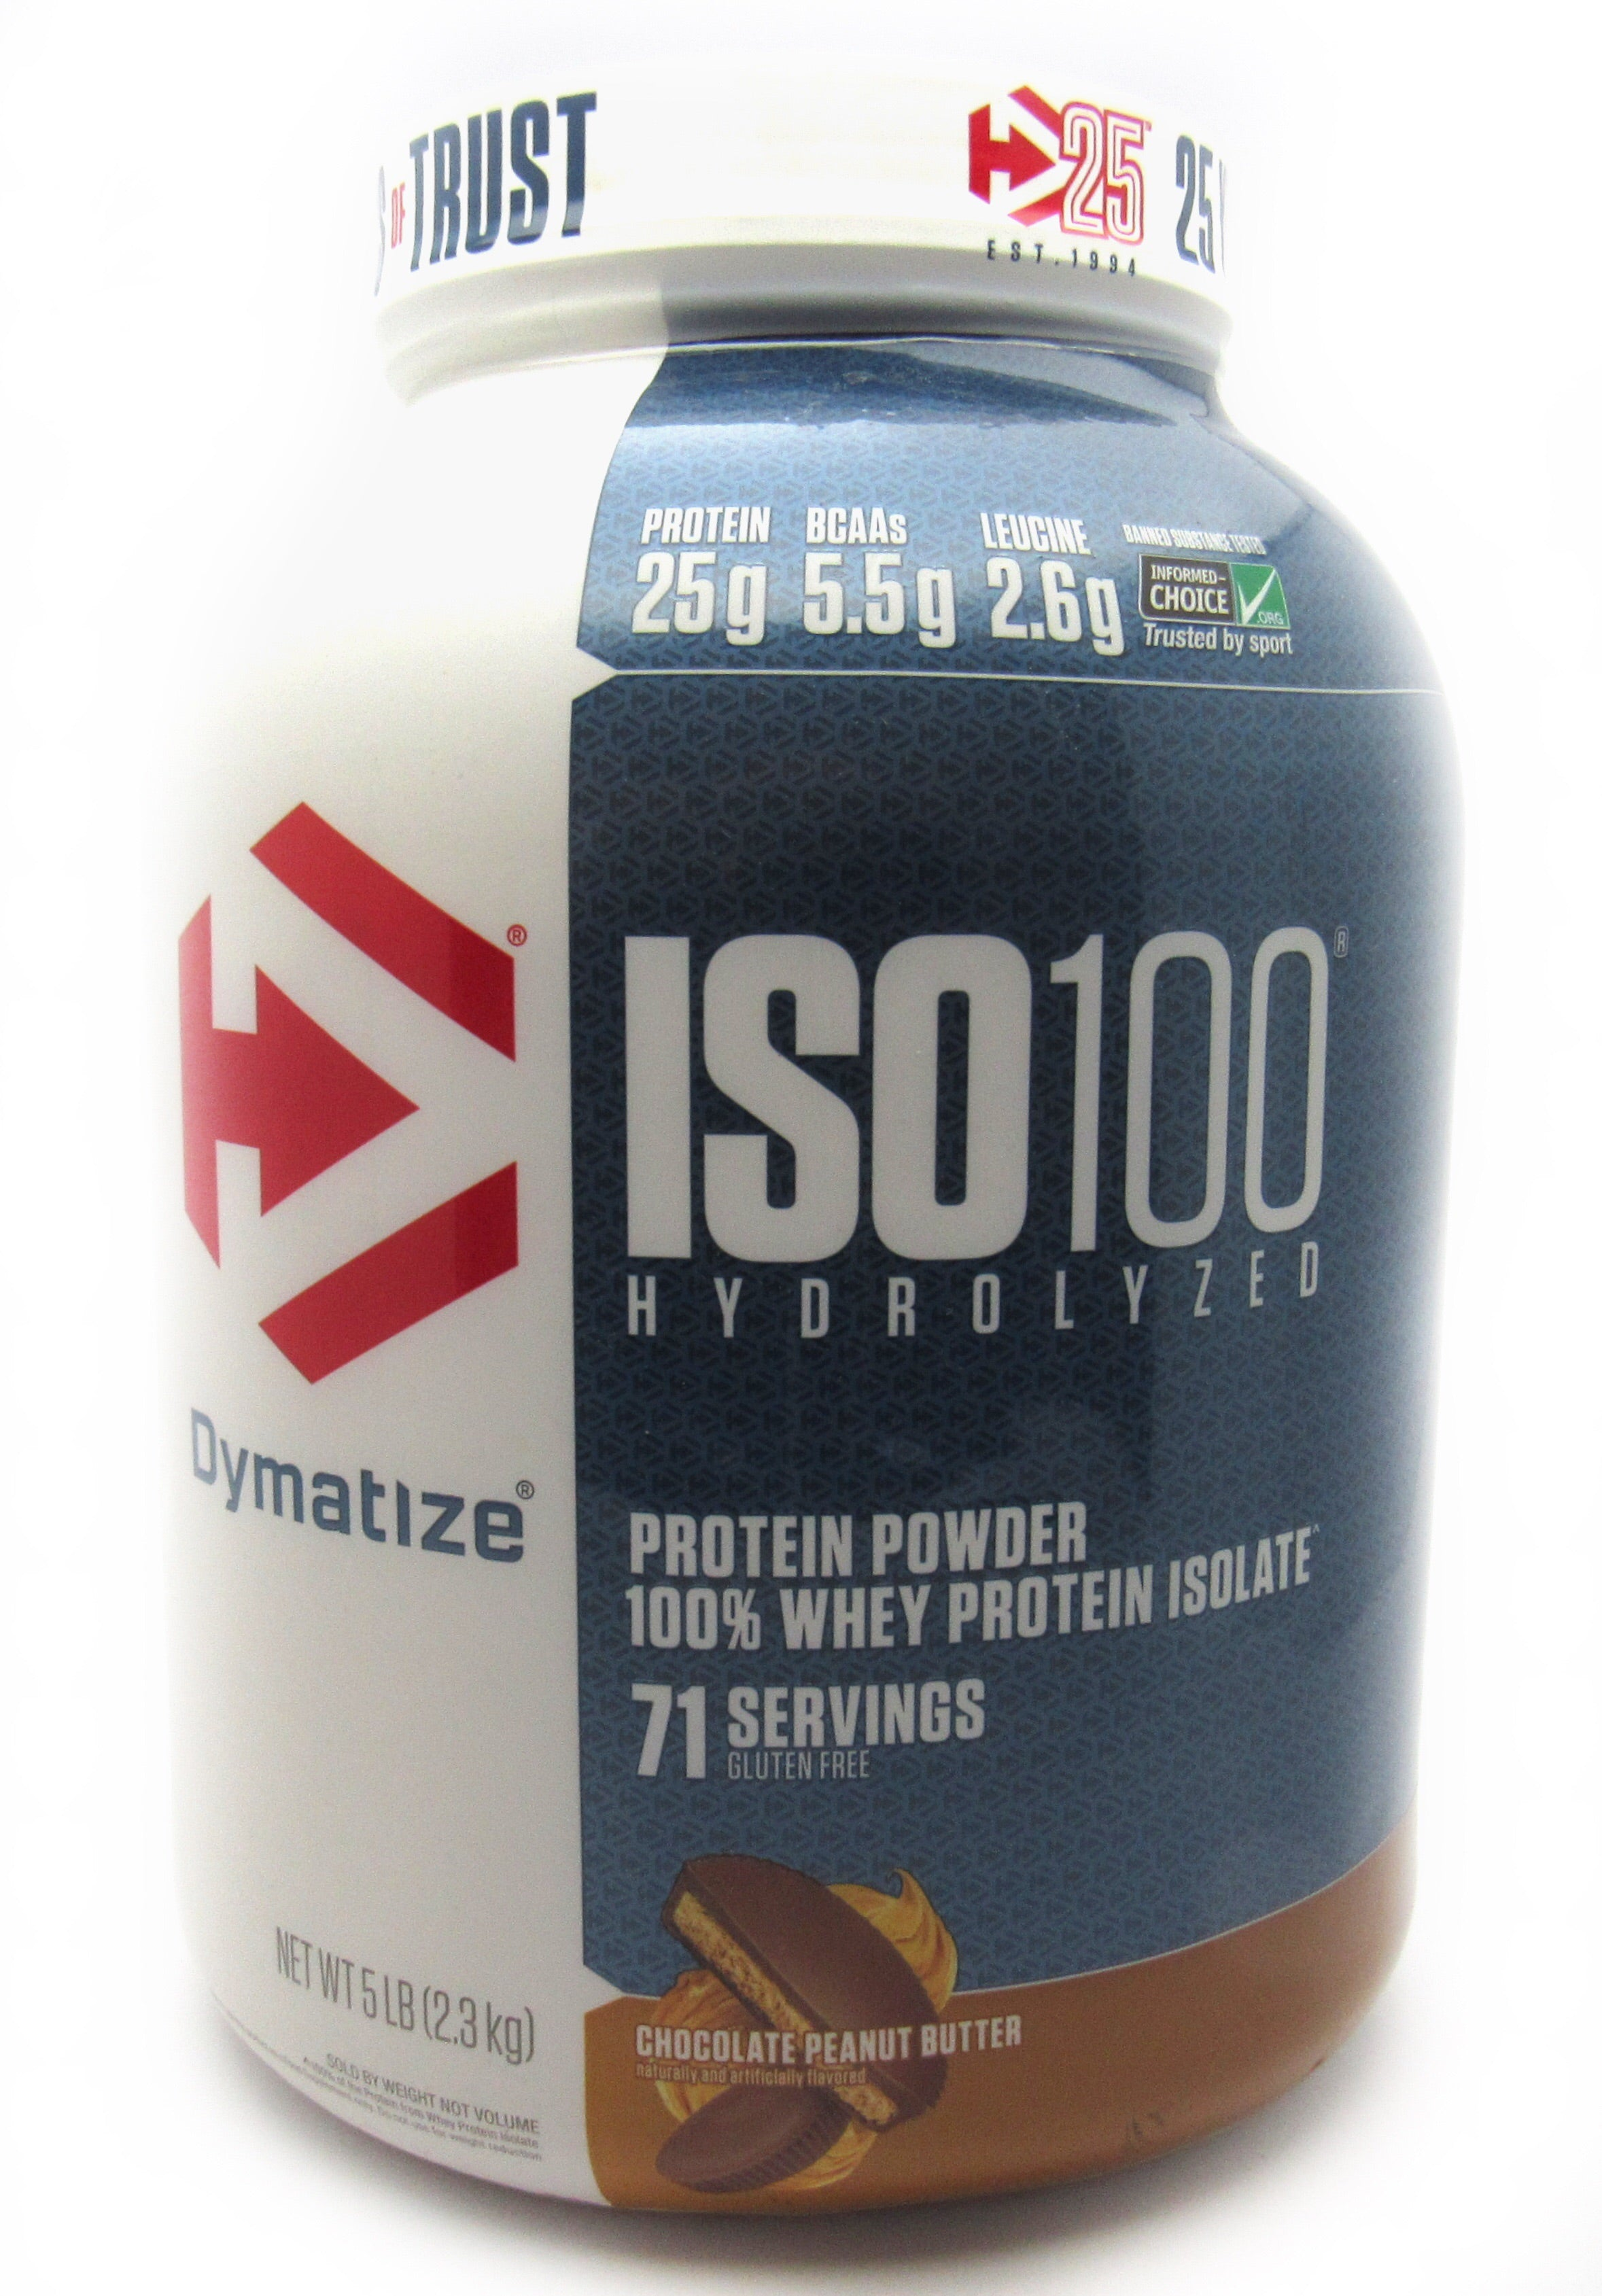 Proteína 5Lb (ISO100 - DYMATIZE) Chocolate Peanut Butter